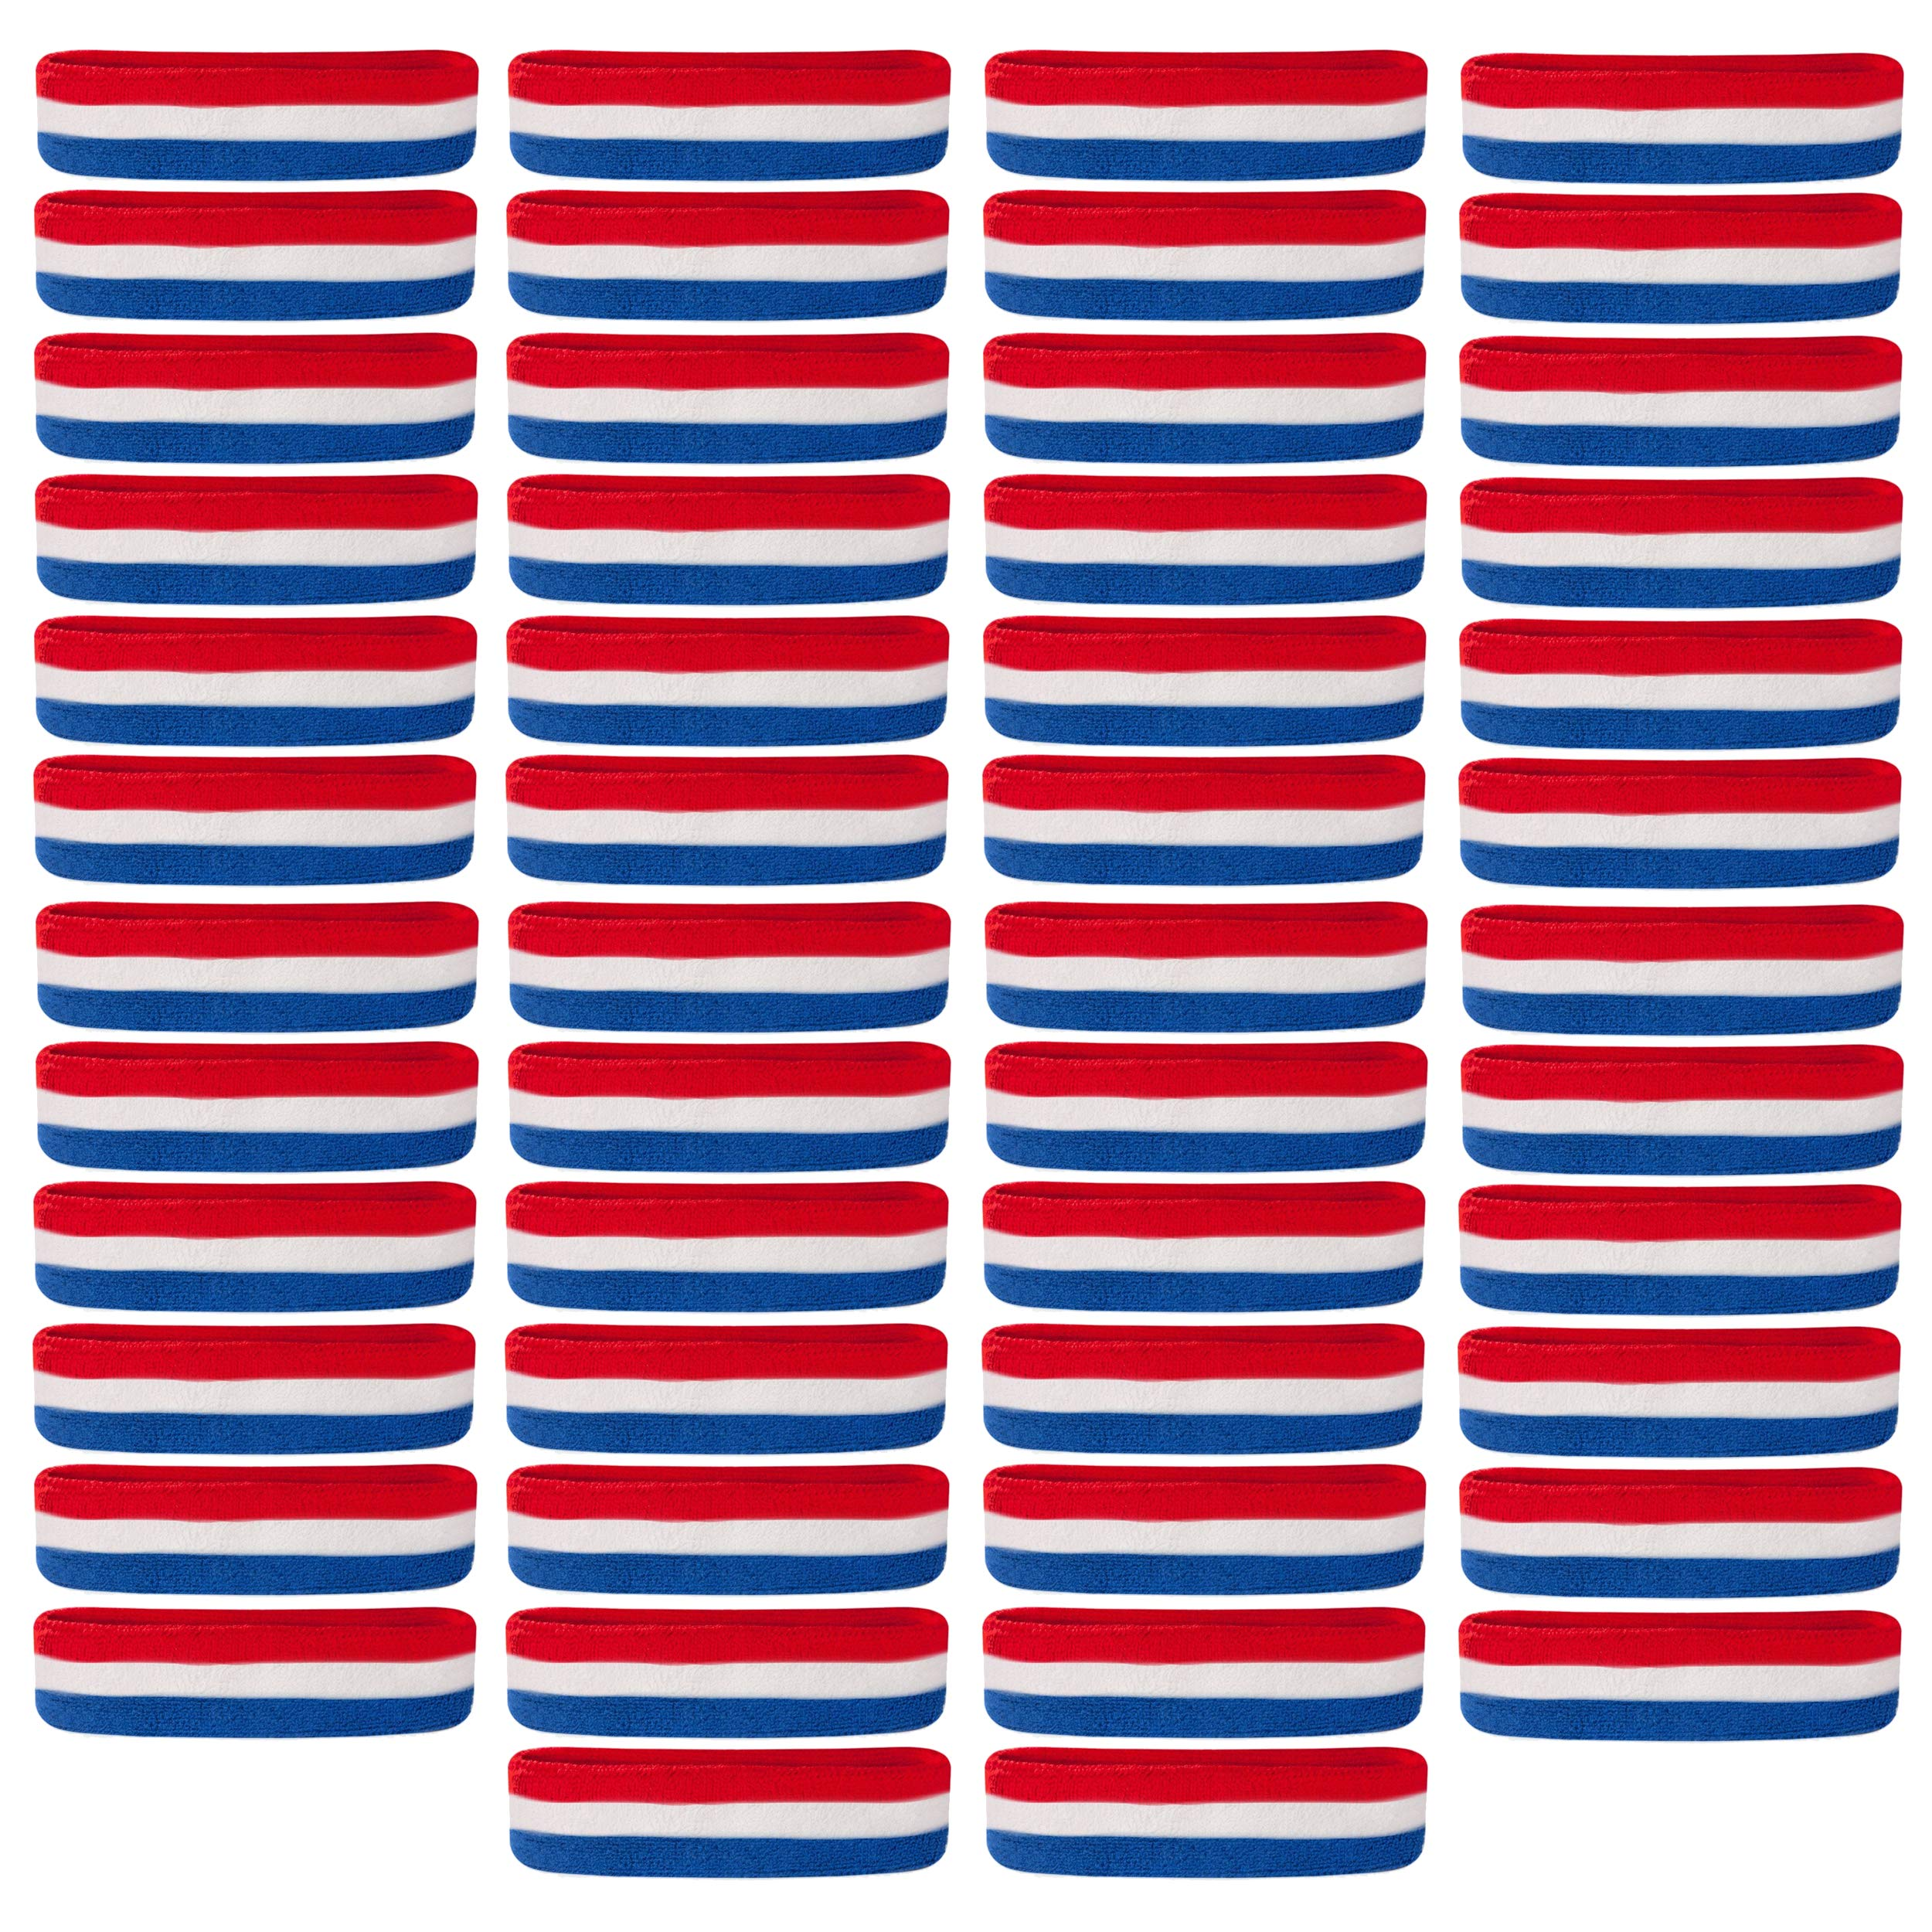 Suddora Sweatbands/Headbands - Terry Cloth Athletic Basketball Head Sweat Bands (Bulk 50-Pack) (Red White Blue) by Suddora